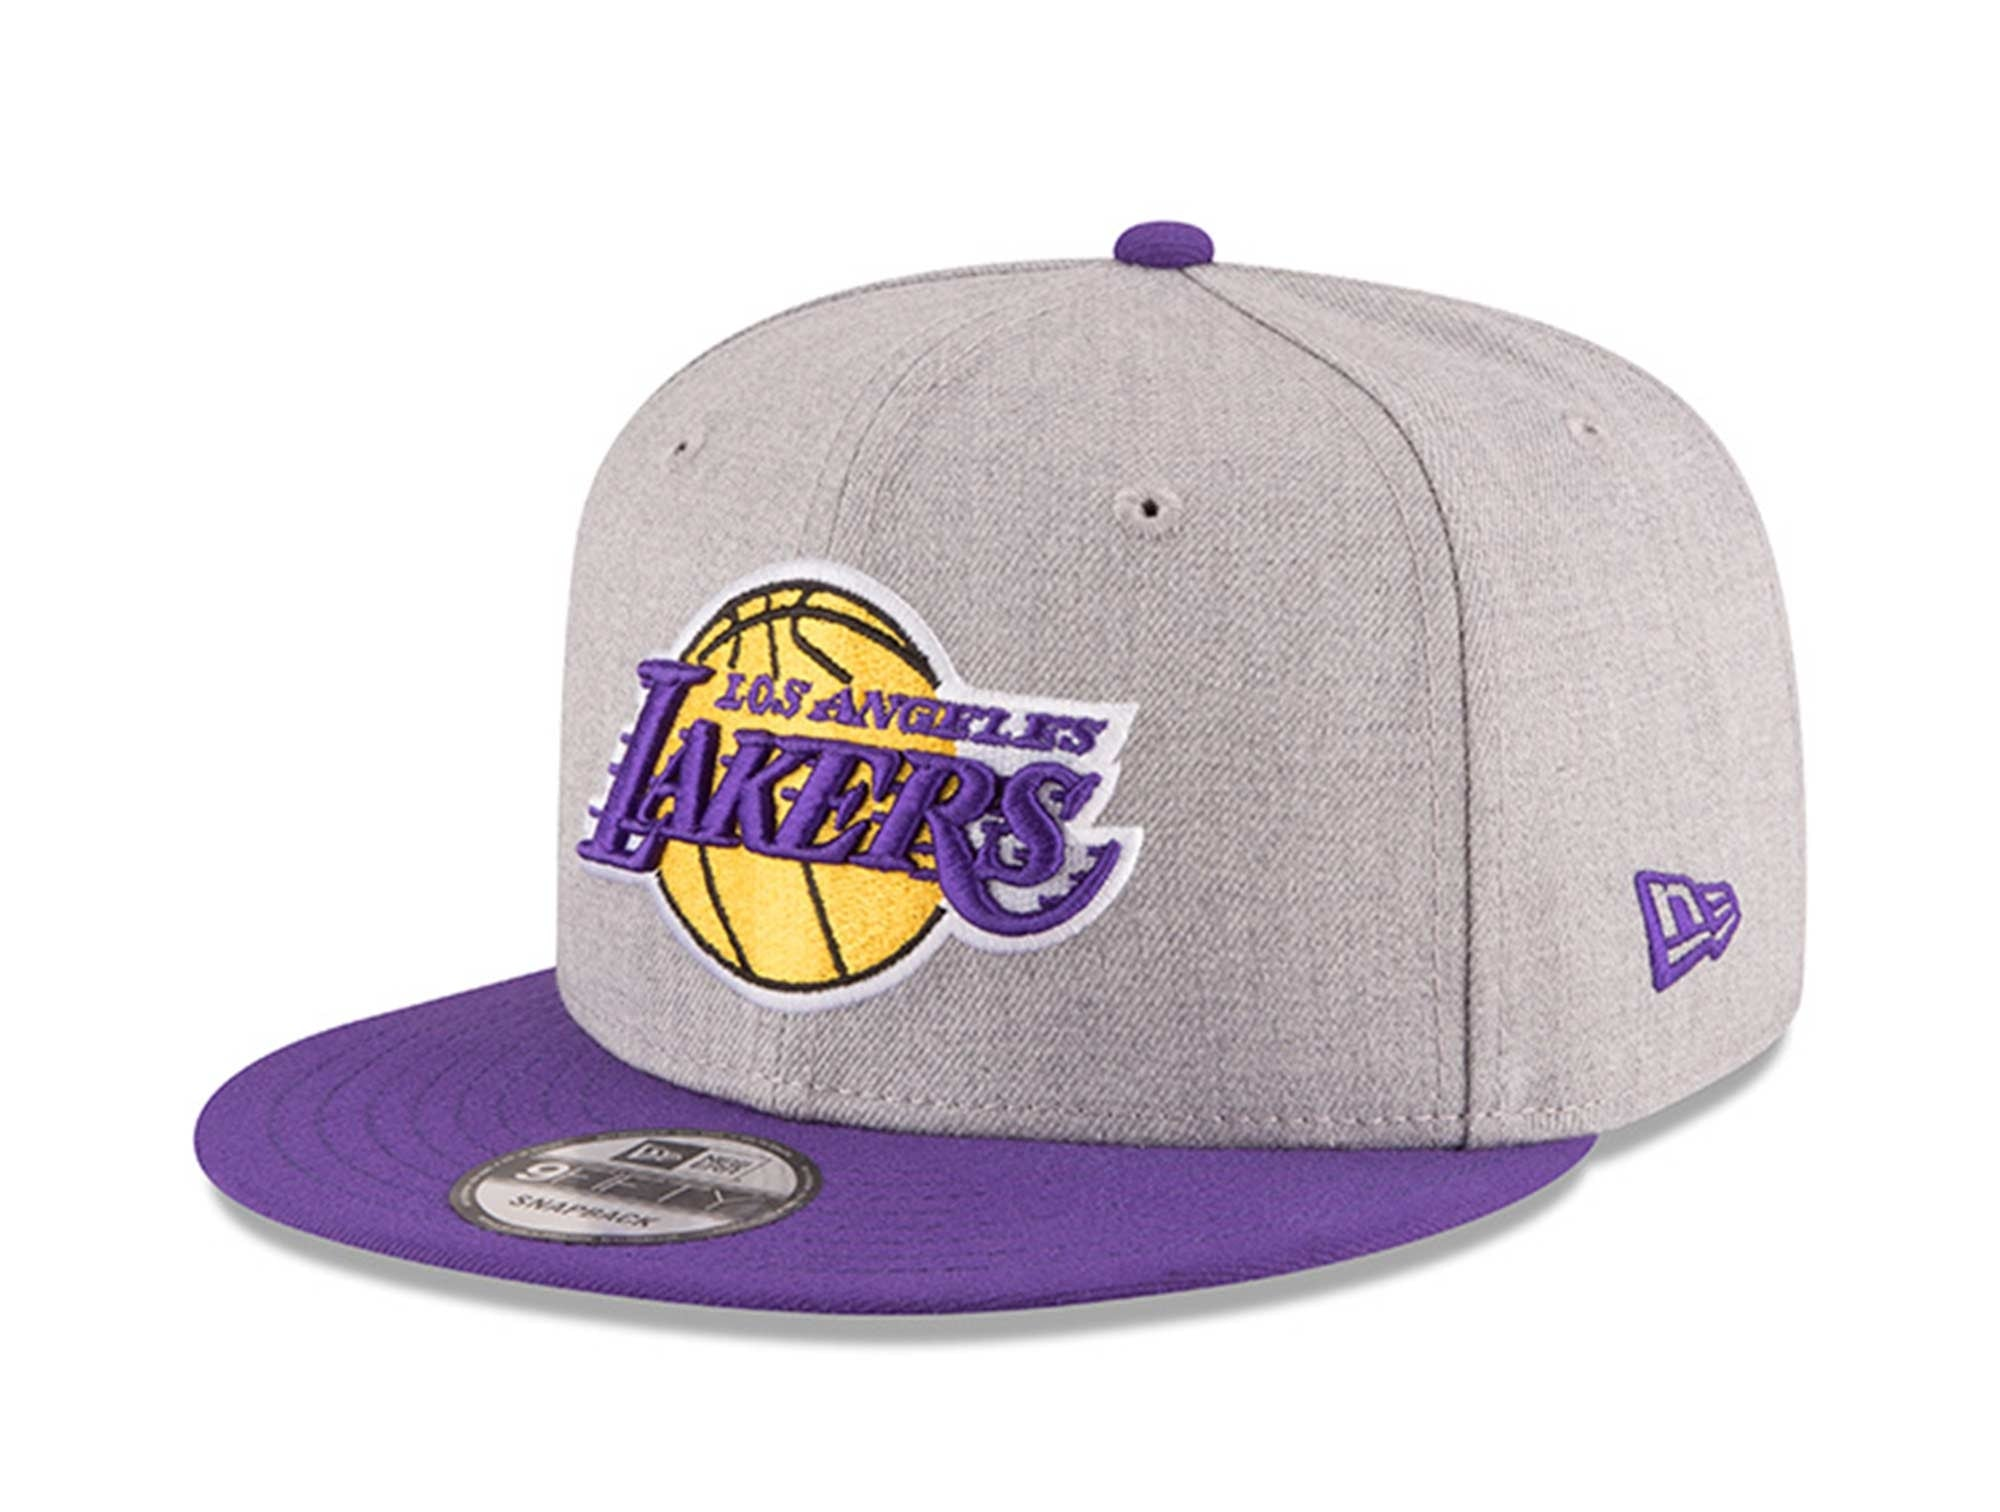 Jockey New Era Nba Los Angeles Lakers 950 Hombre